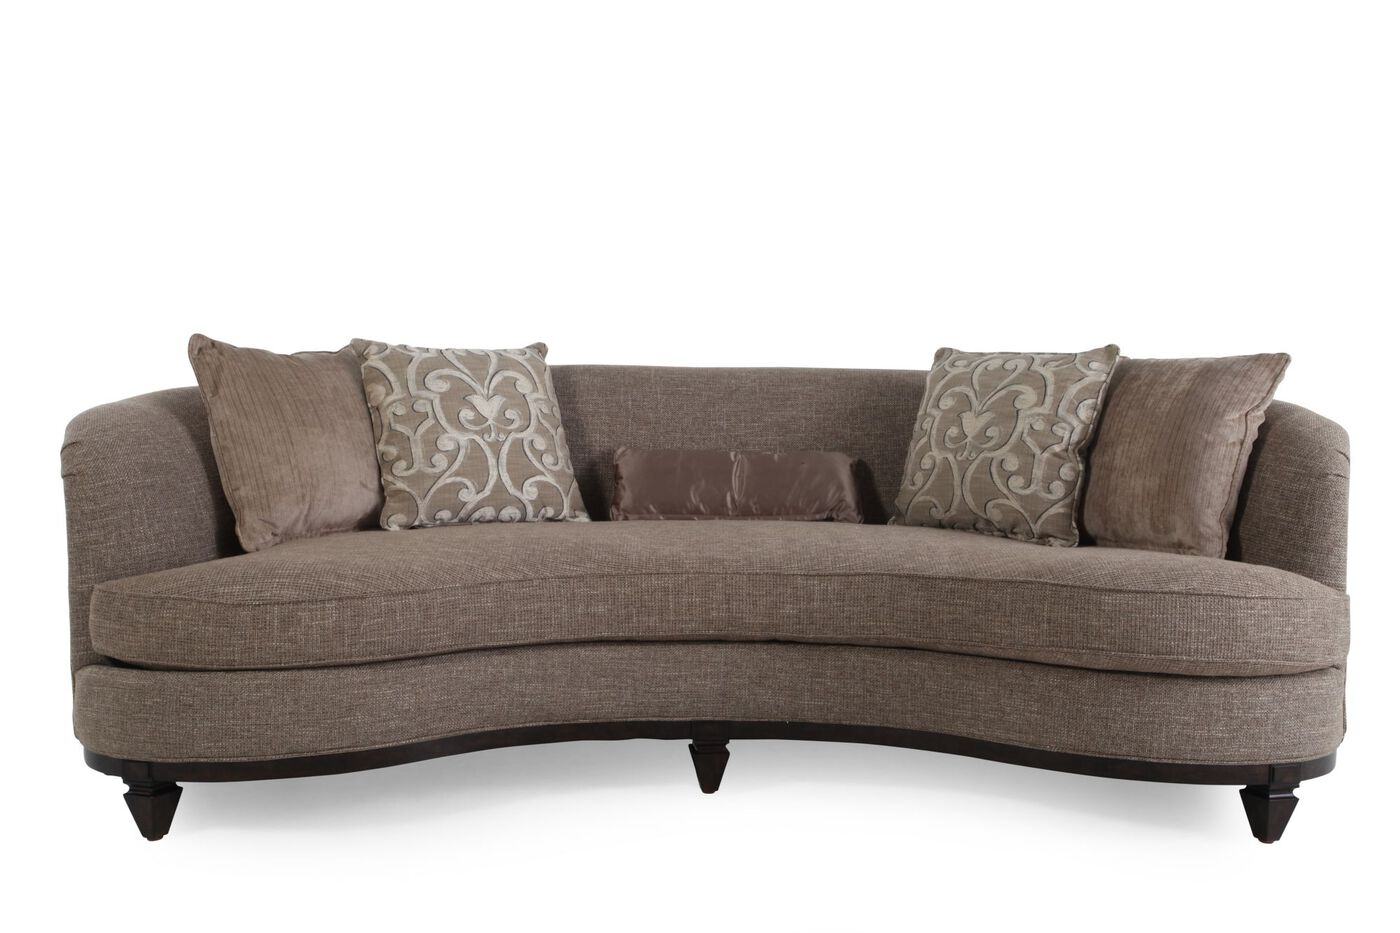 101 Quot Kidney Sofa In Portabella Mathis Brothers Furniture